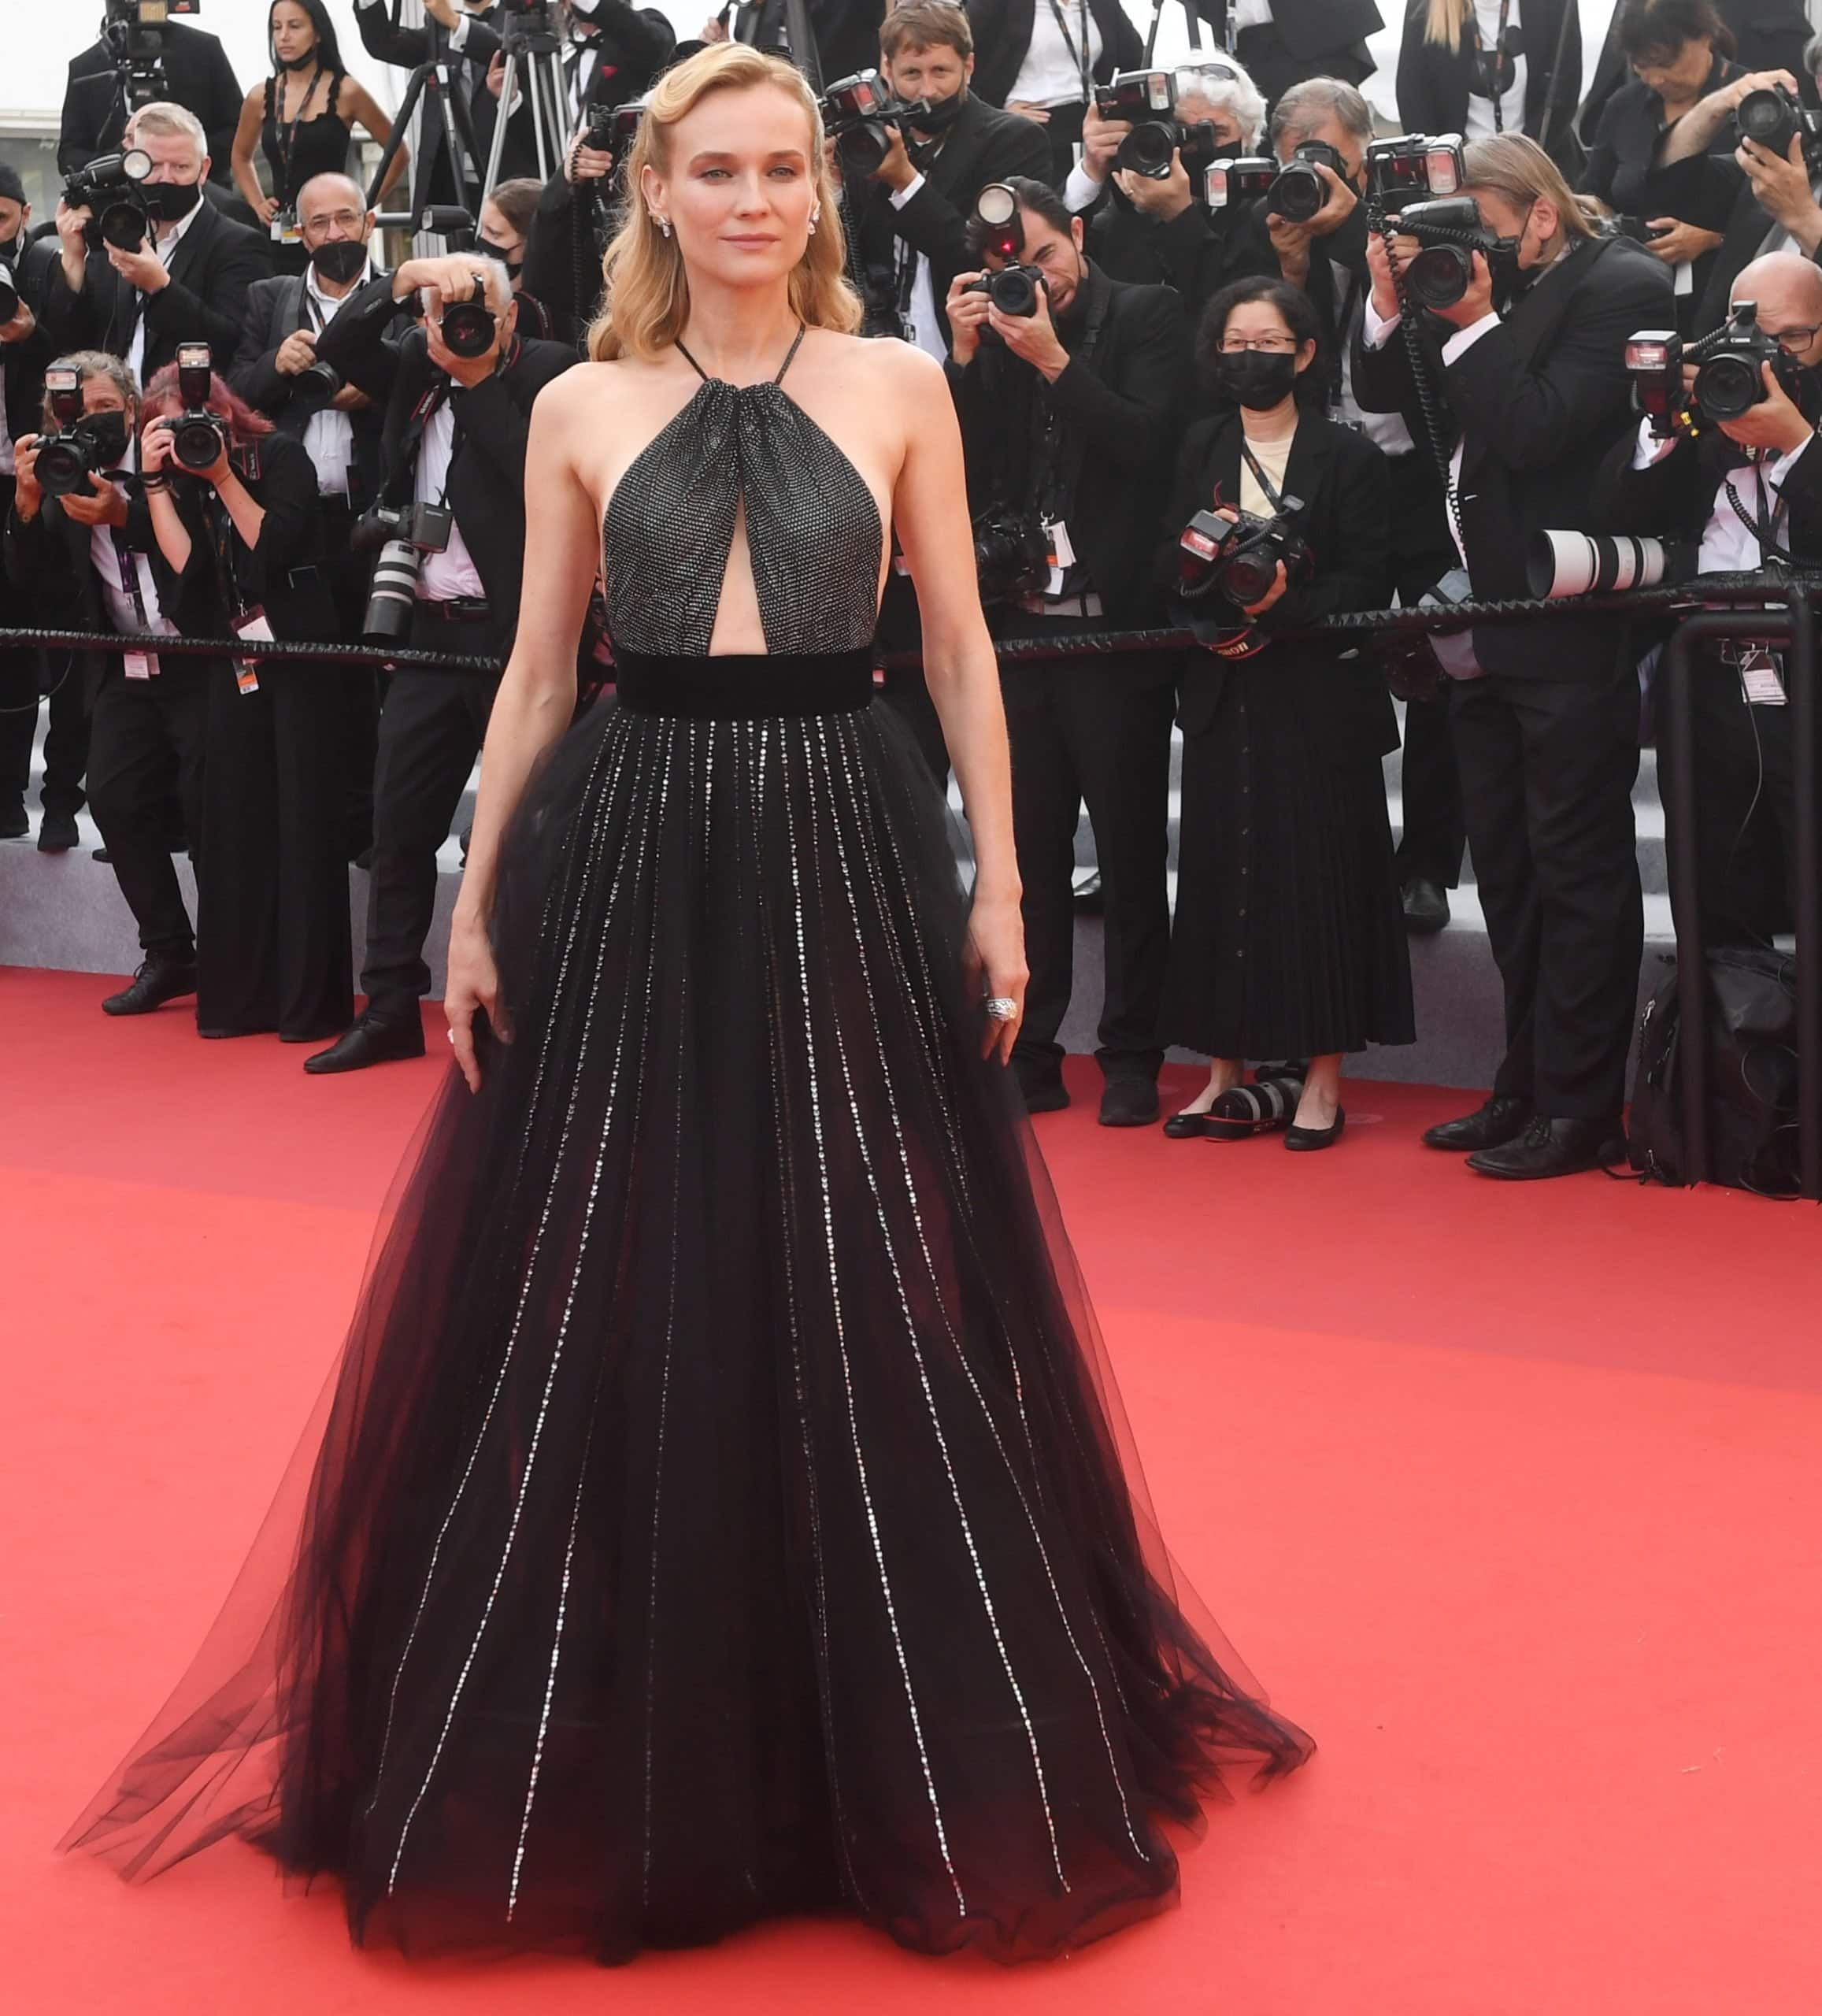 Diane Kruger in a bejeweled Armani Prive dress at the 2021 Cannes Film Festival for the premieres of Tout S'est Bien Passe and The Velvet Underground